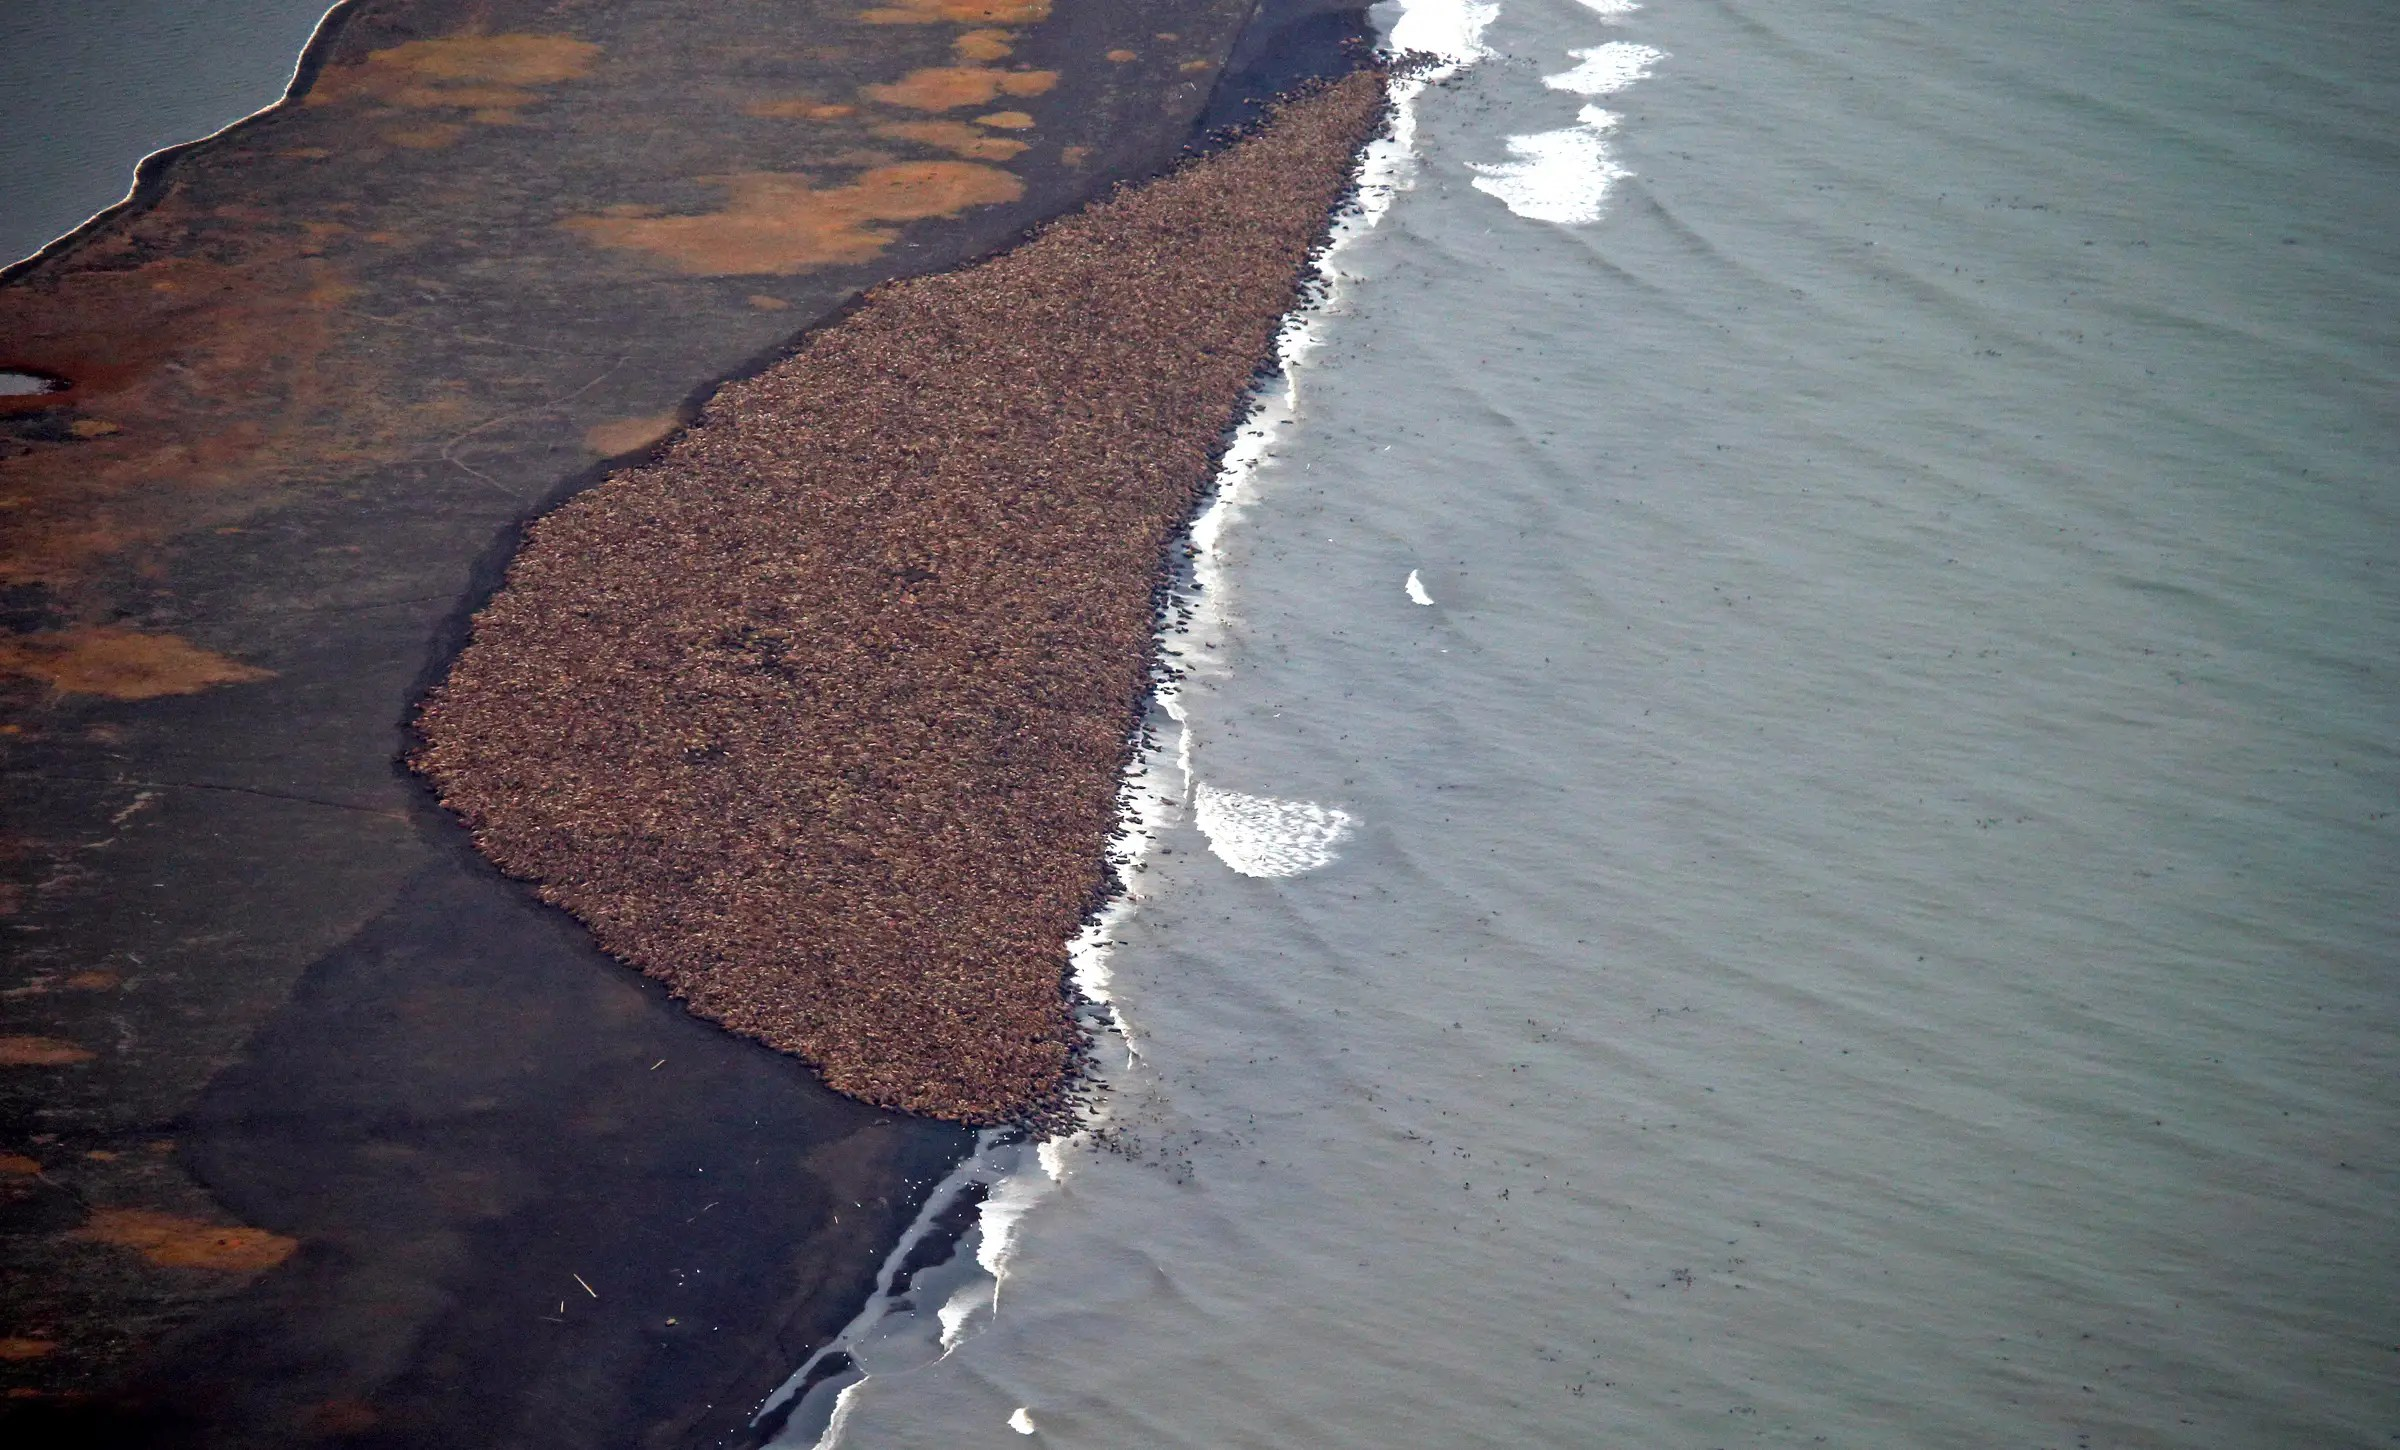 About 35,000 walruses suddenly and surprisingly gathered together in one place on the Alaskan coast in October.